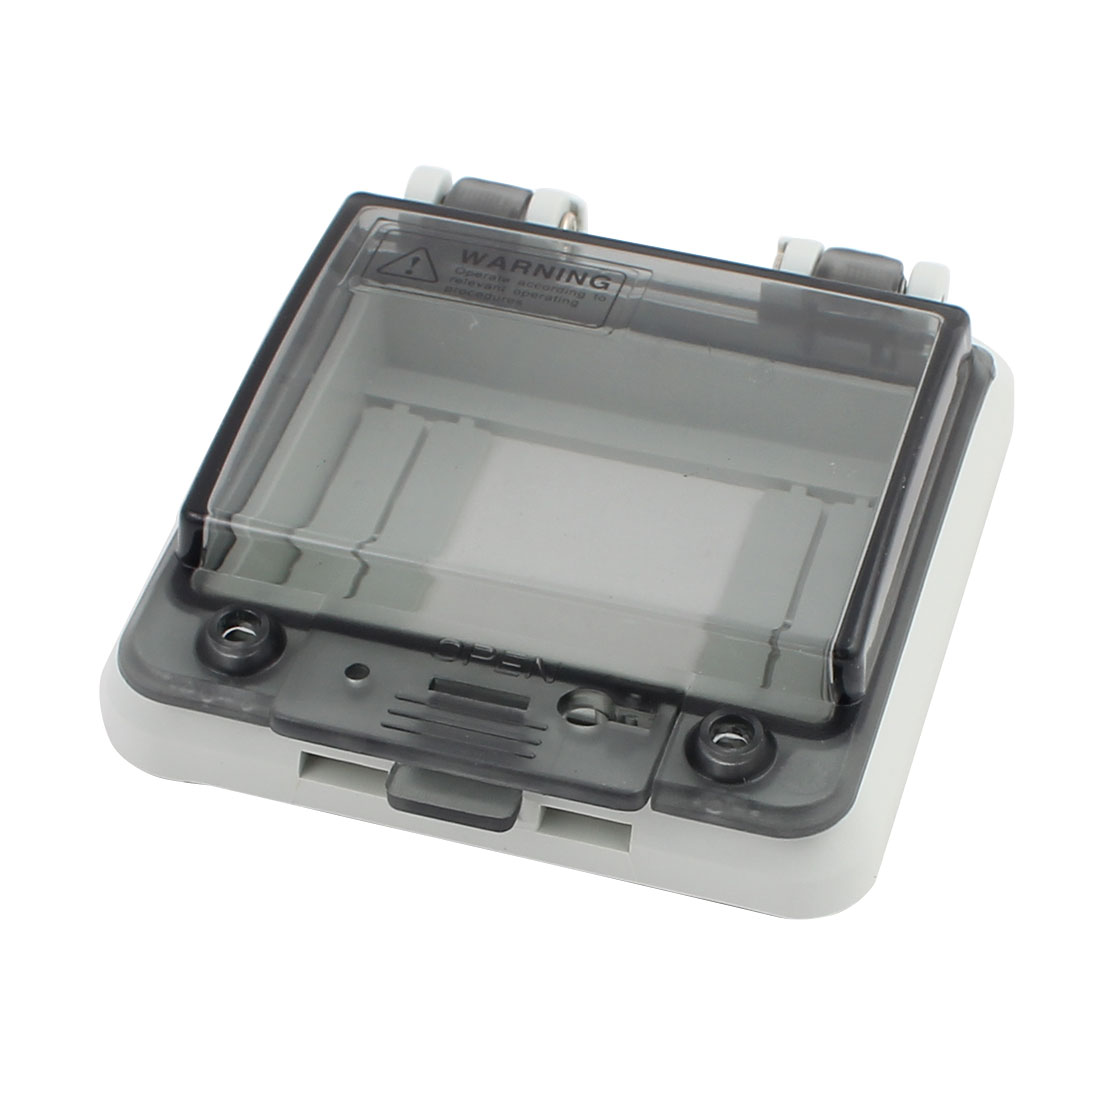 PWH-0404 93mmx92mmx43mm Cover for Junction Box Enclosure